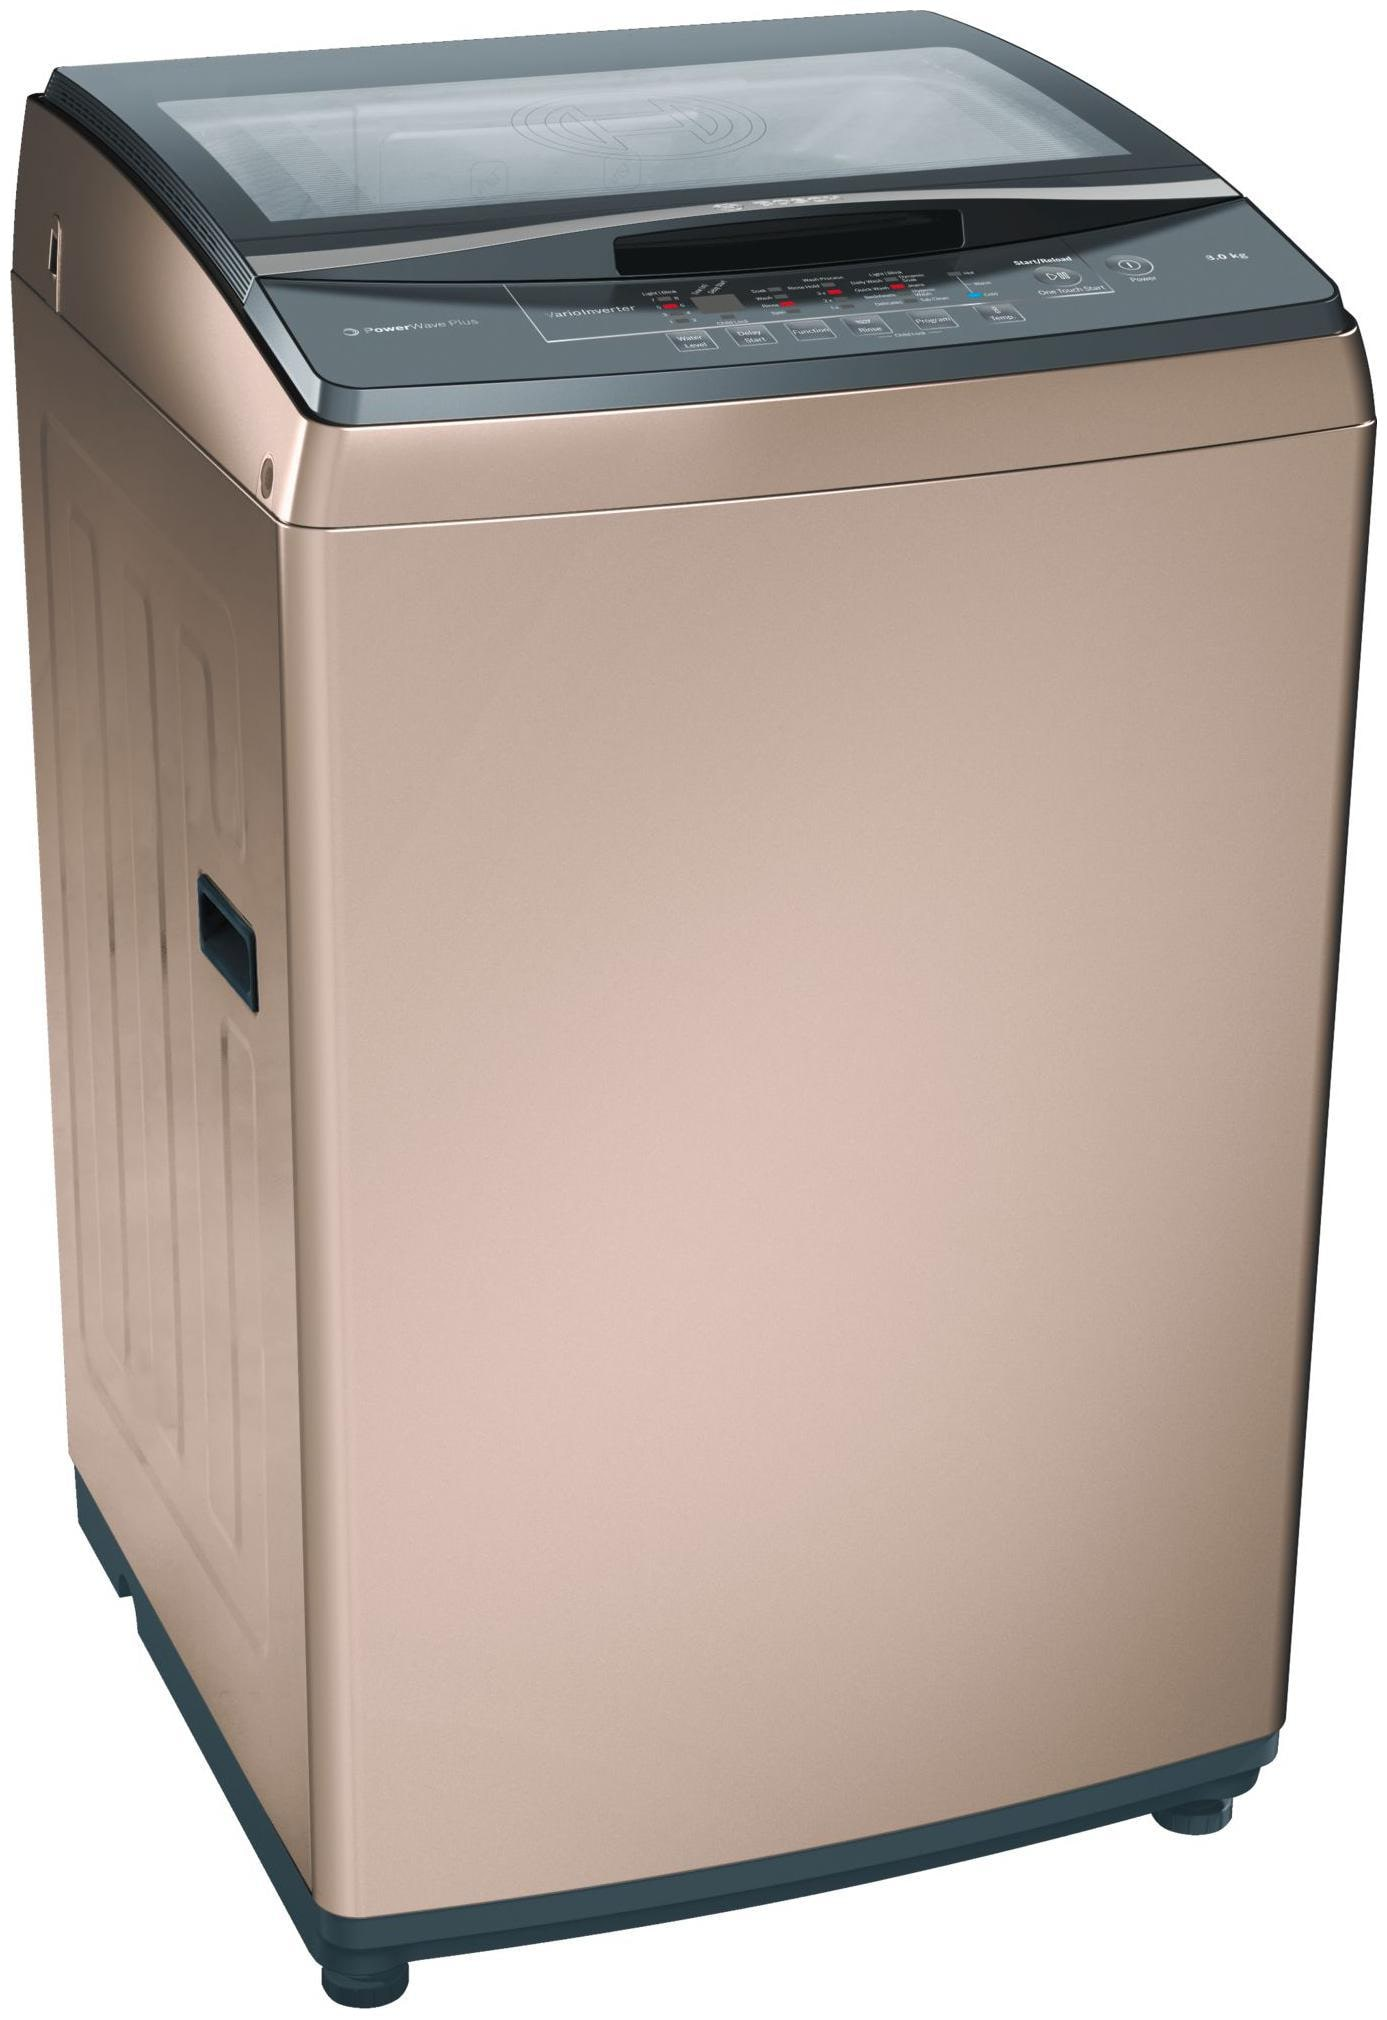 Bosch 8 Kg Fully automatic top load Washing machine   WOA802R0IN , Champagne